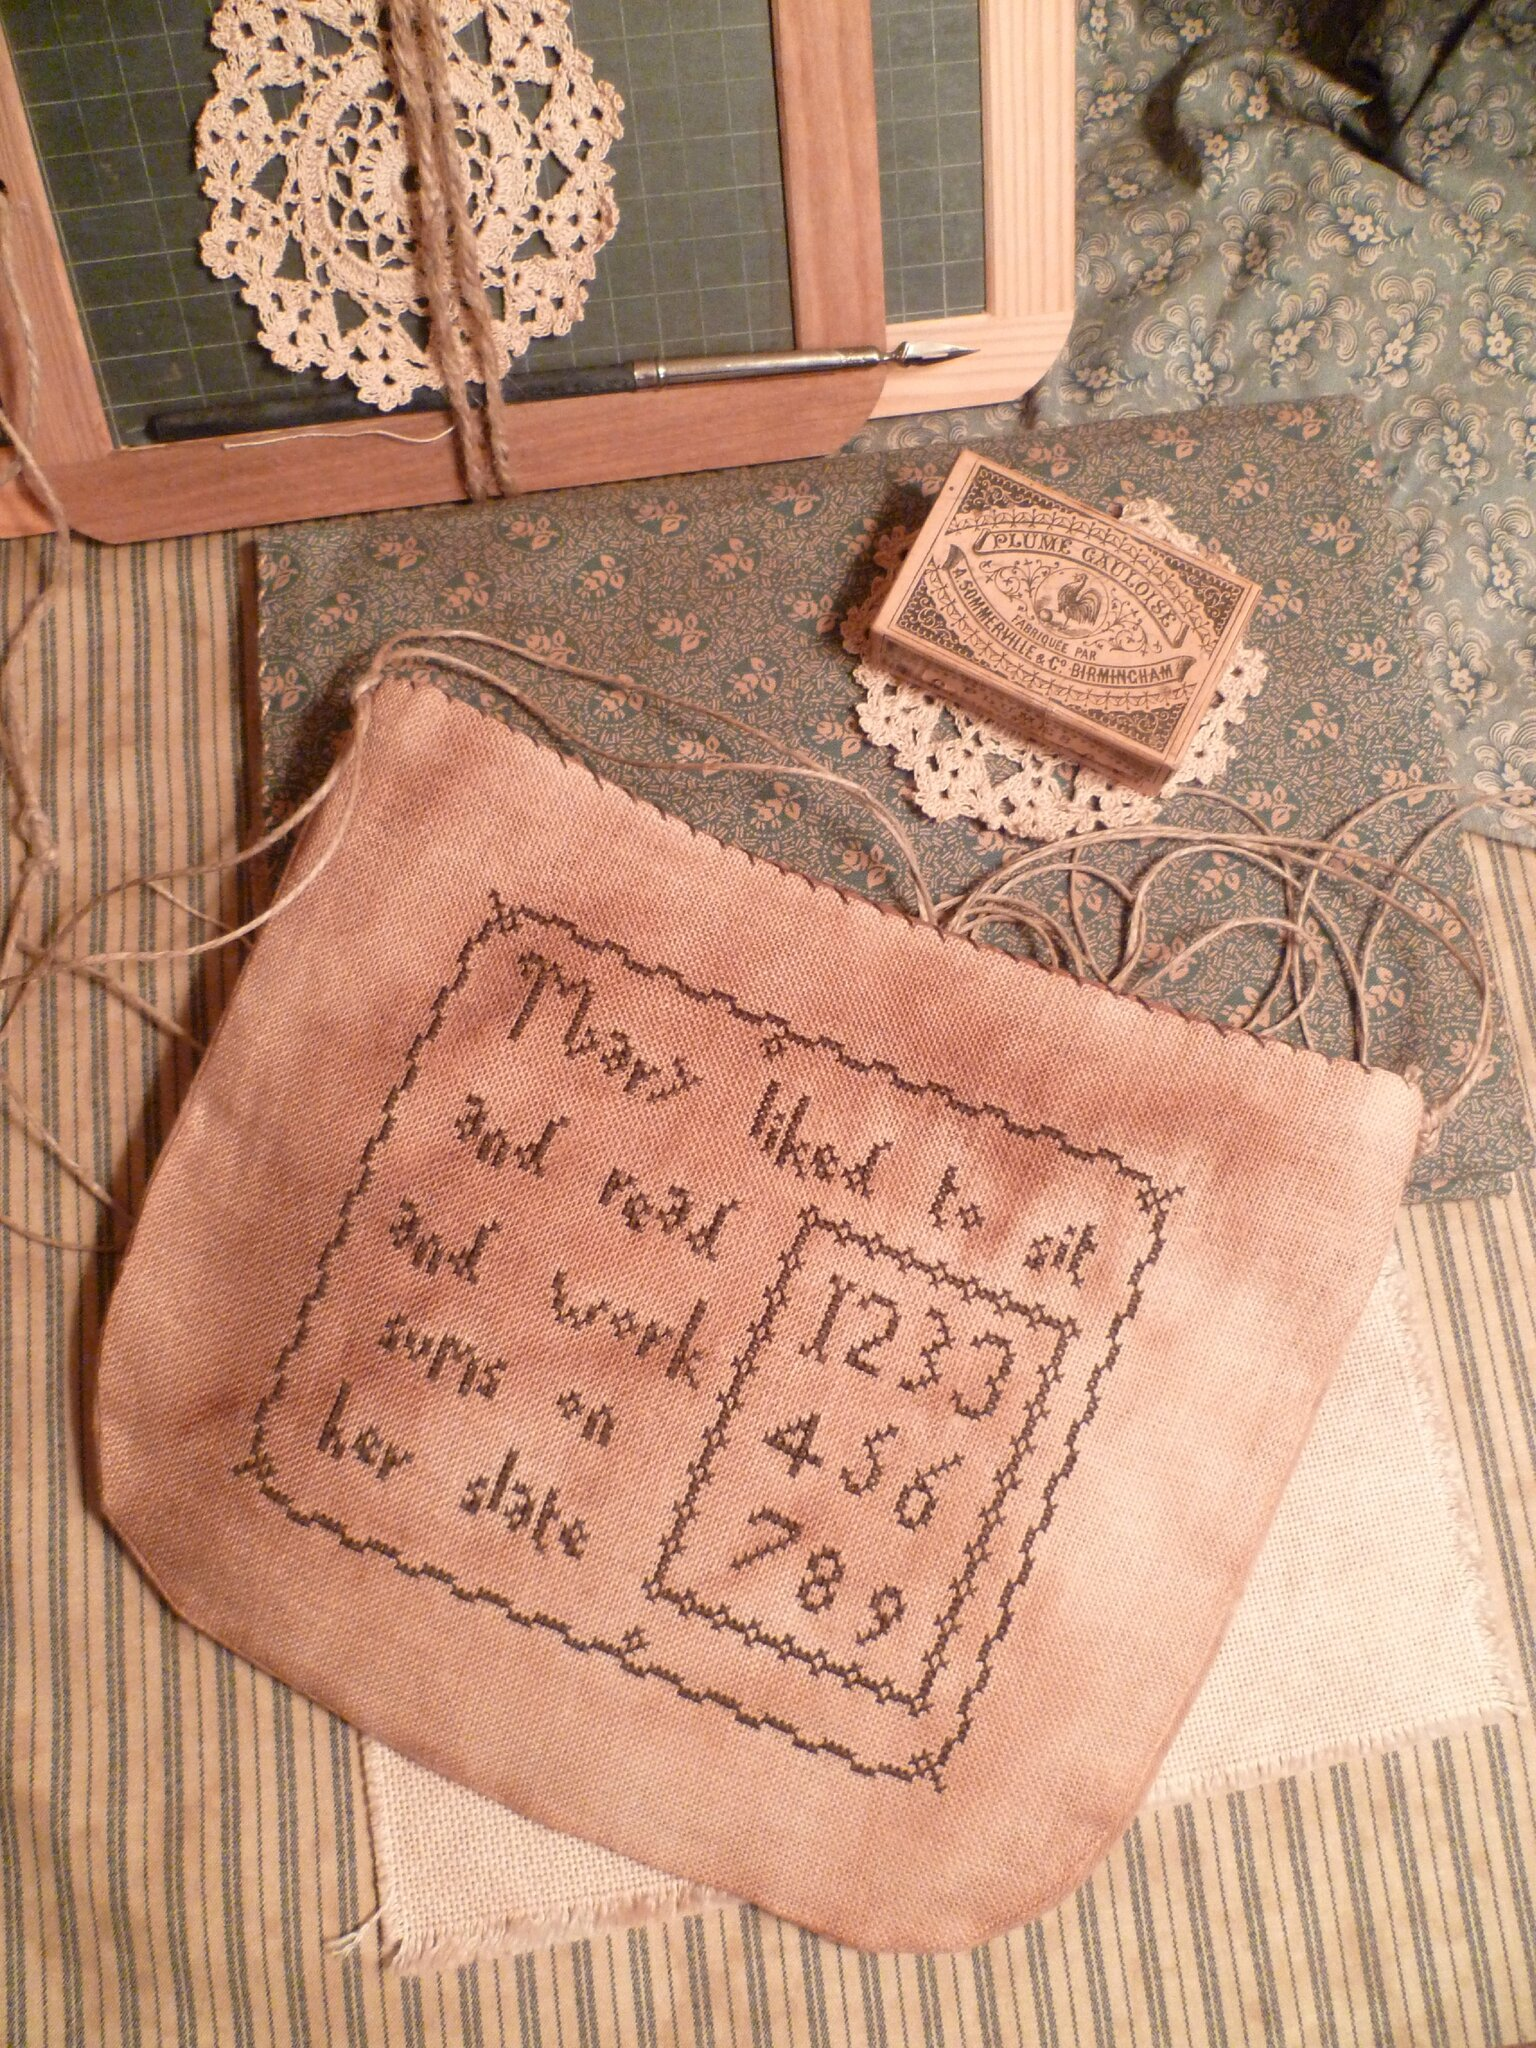 SCHOOL THEME: Mary liked to sit and read Pouch US $ 8.00